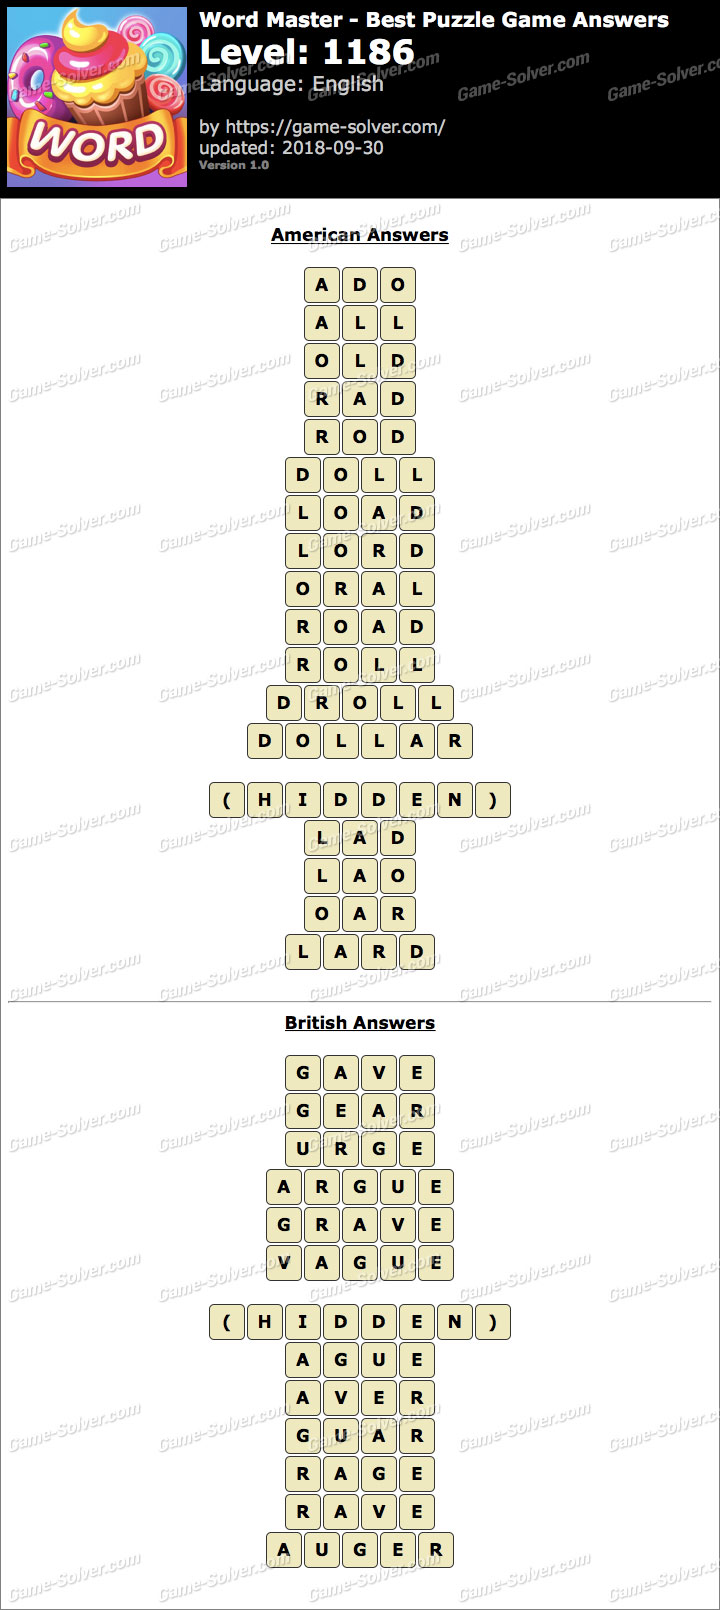 Word Master-Best Puzzle Game Level 1186 Answers